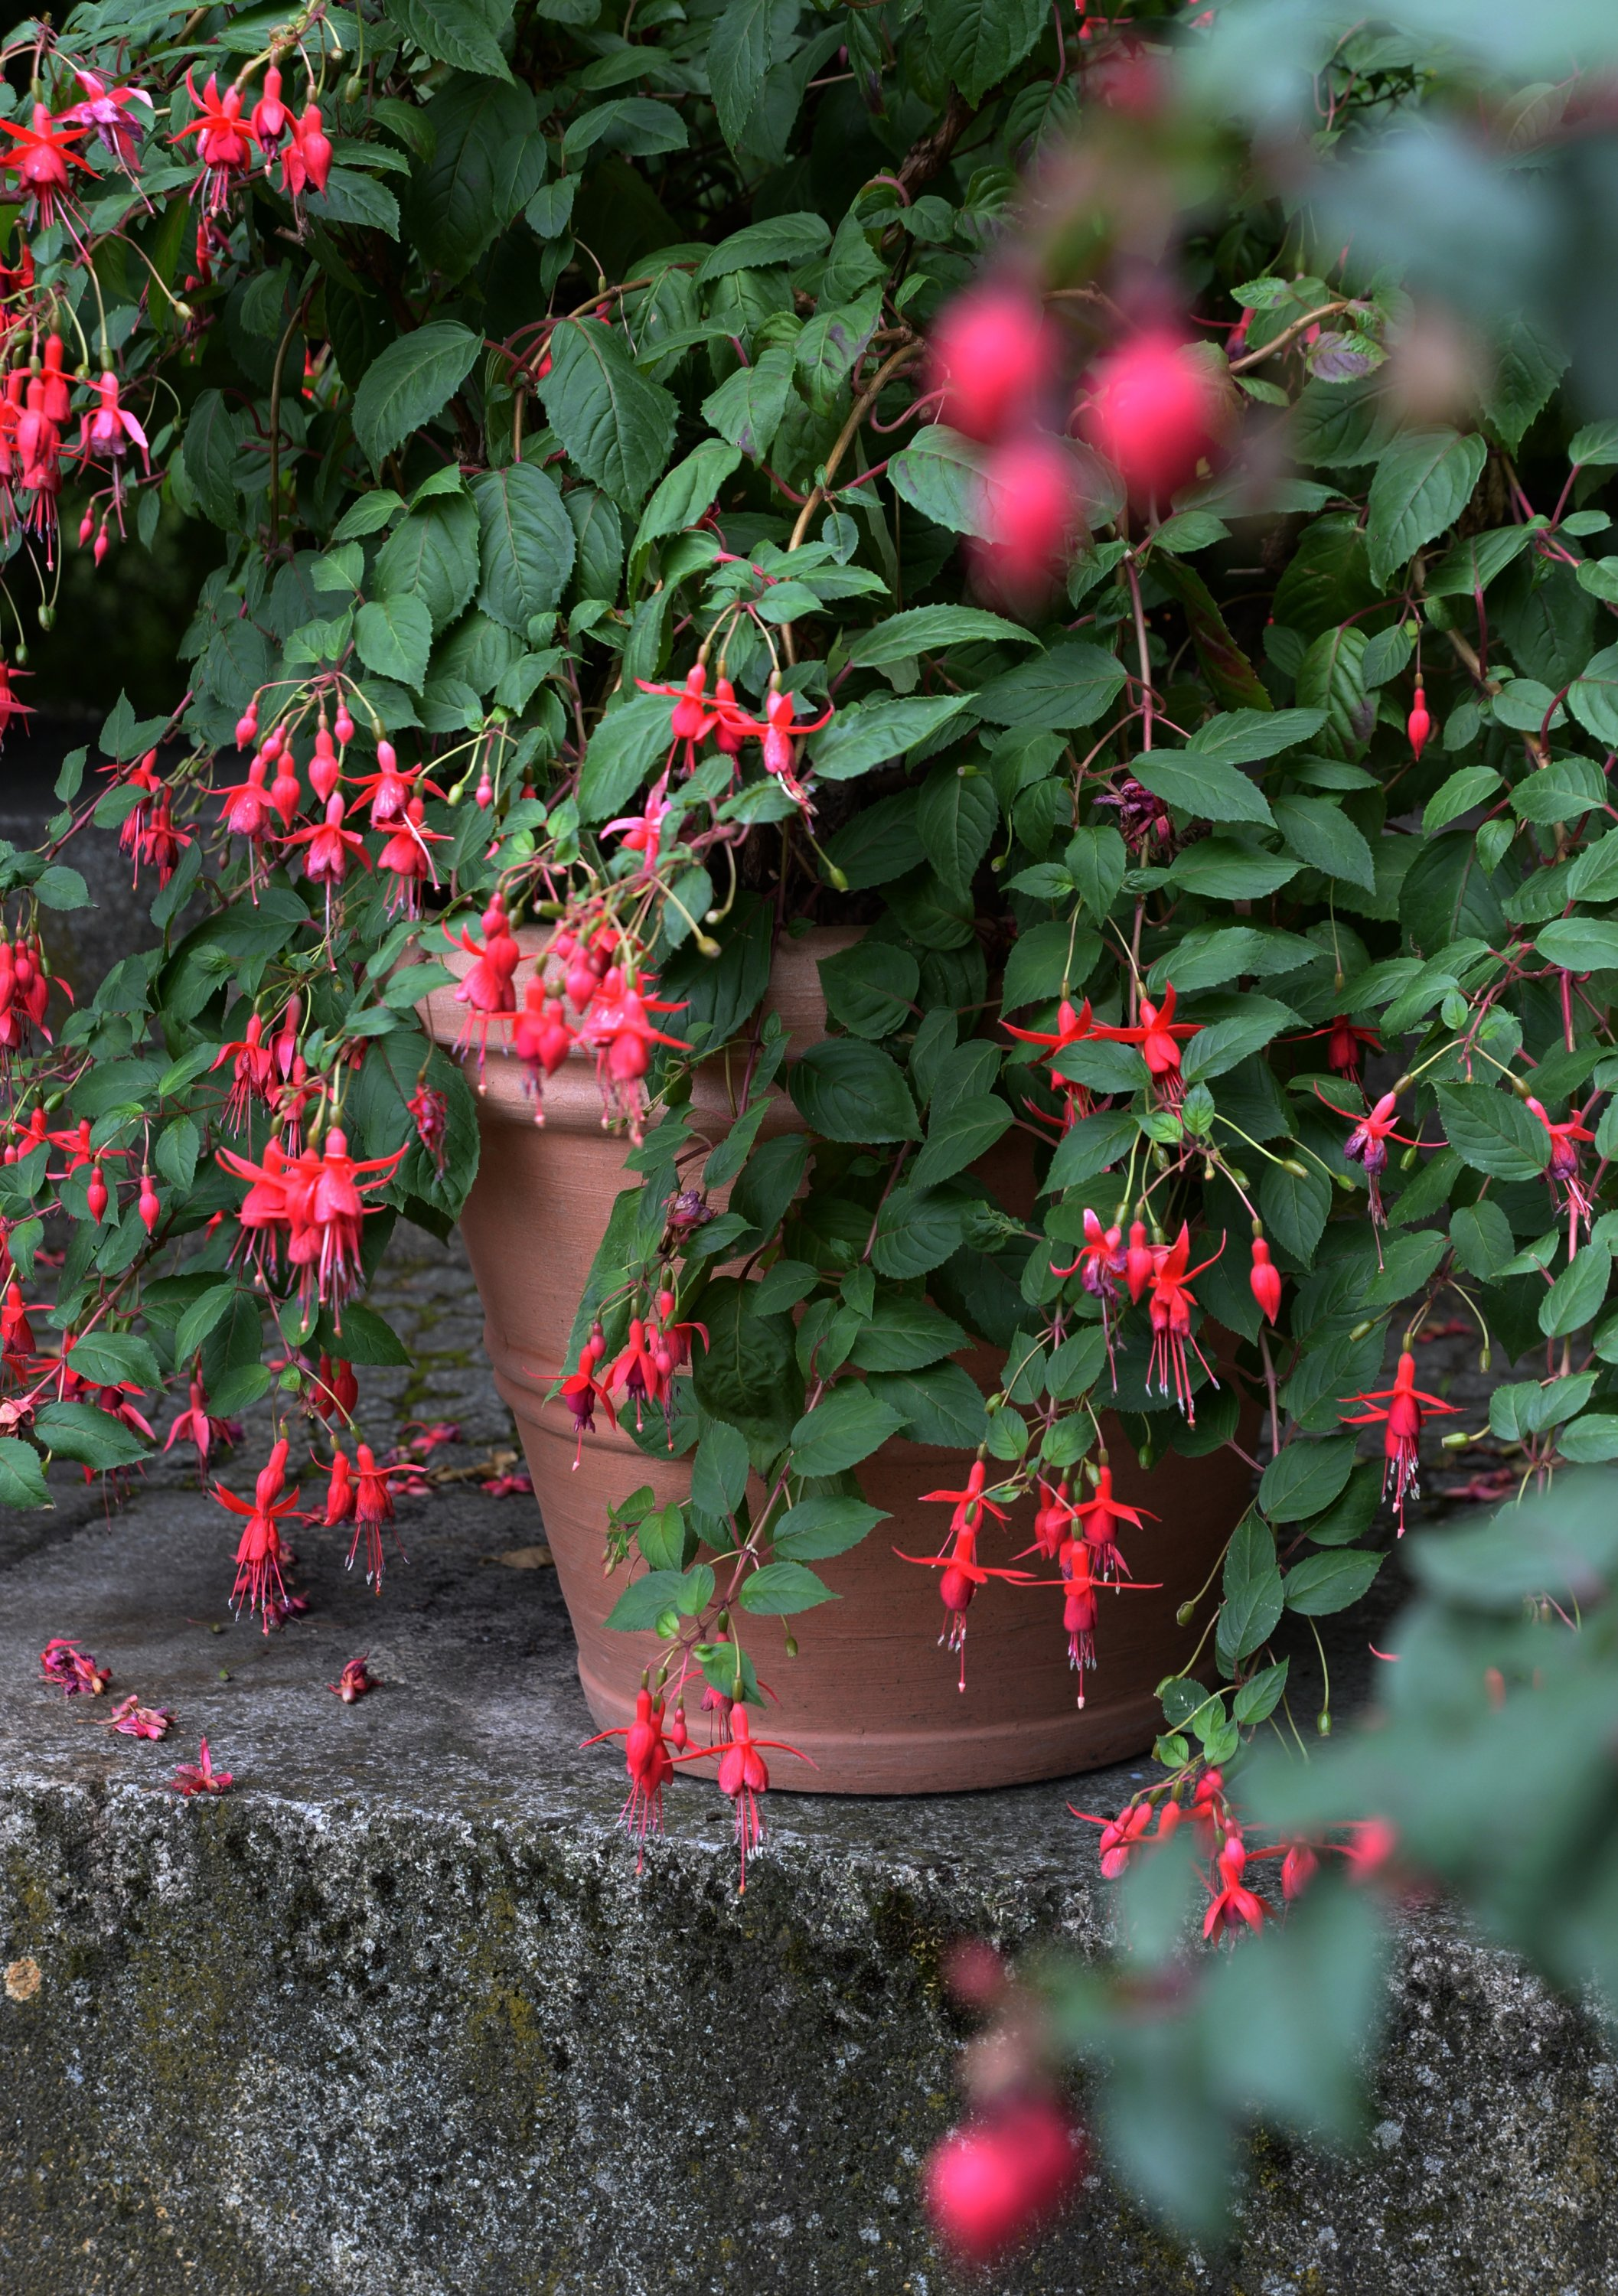 Fuchsias also develop splendidly in the shade. (DPA Photo)